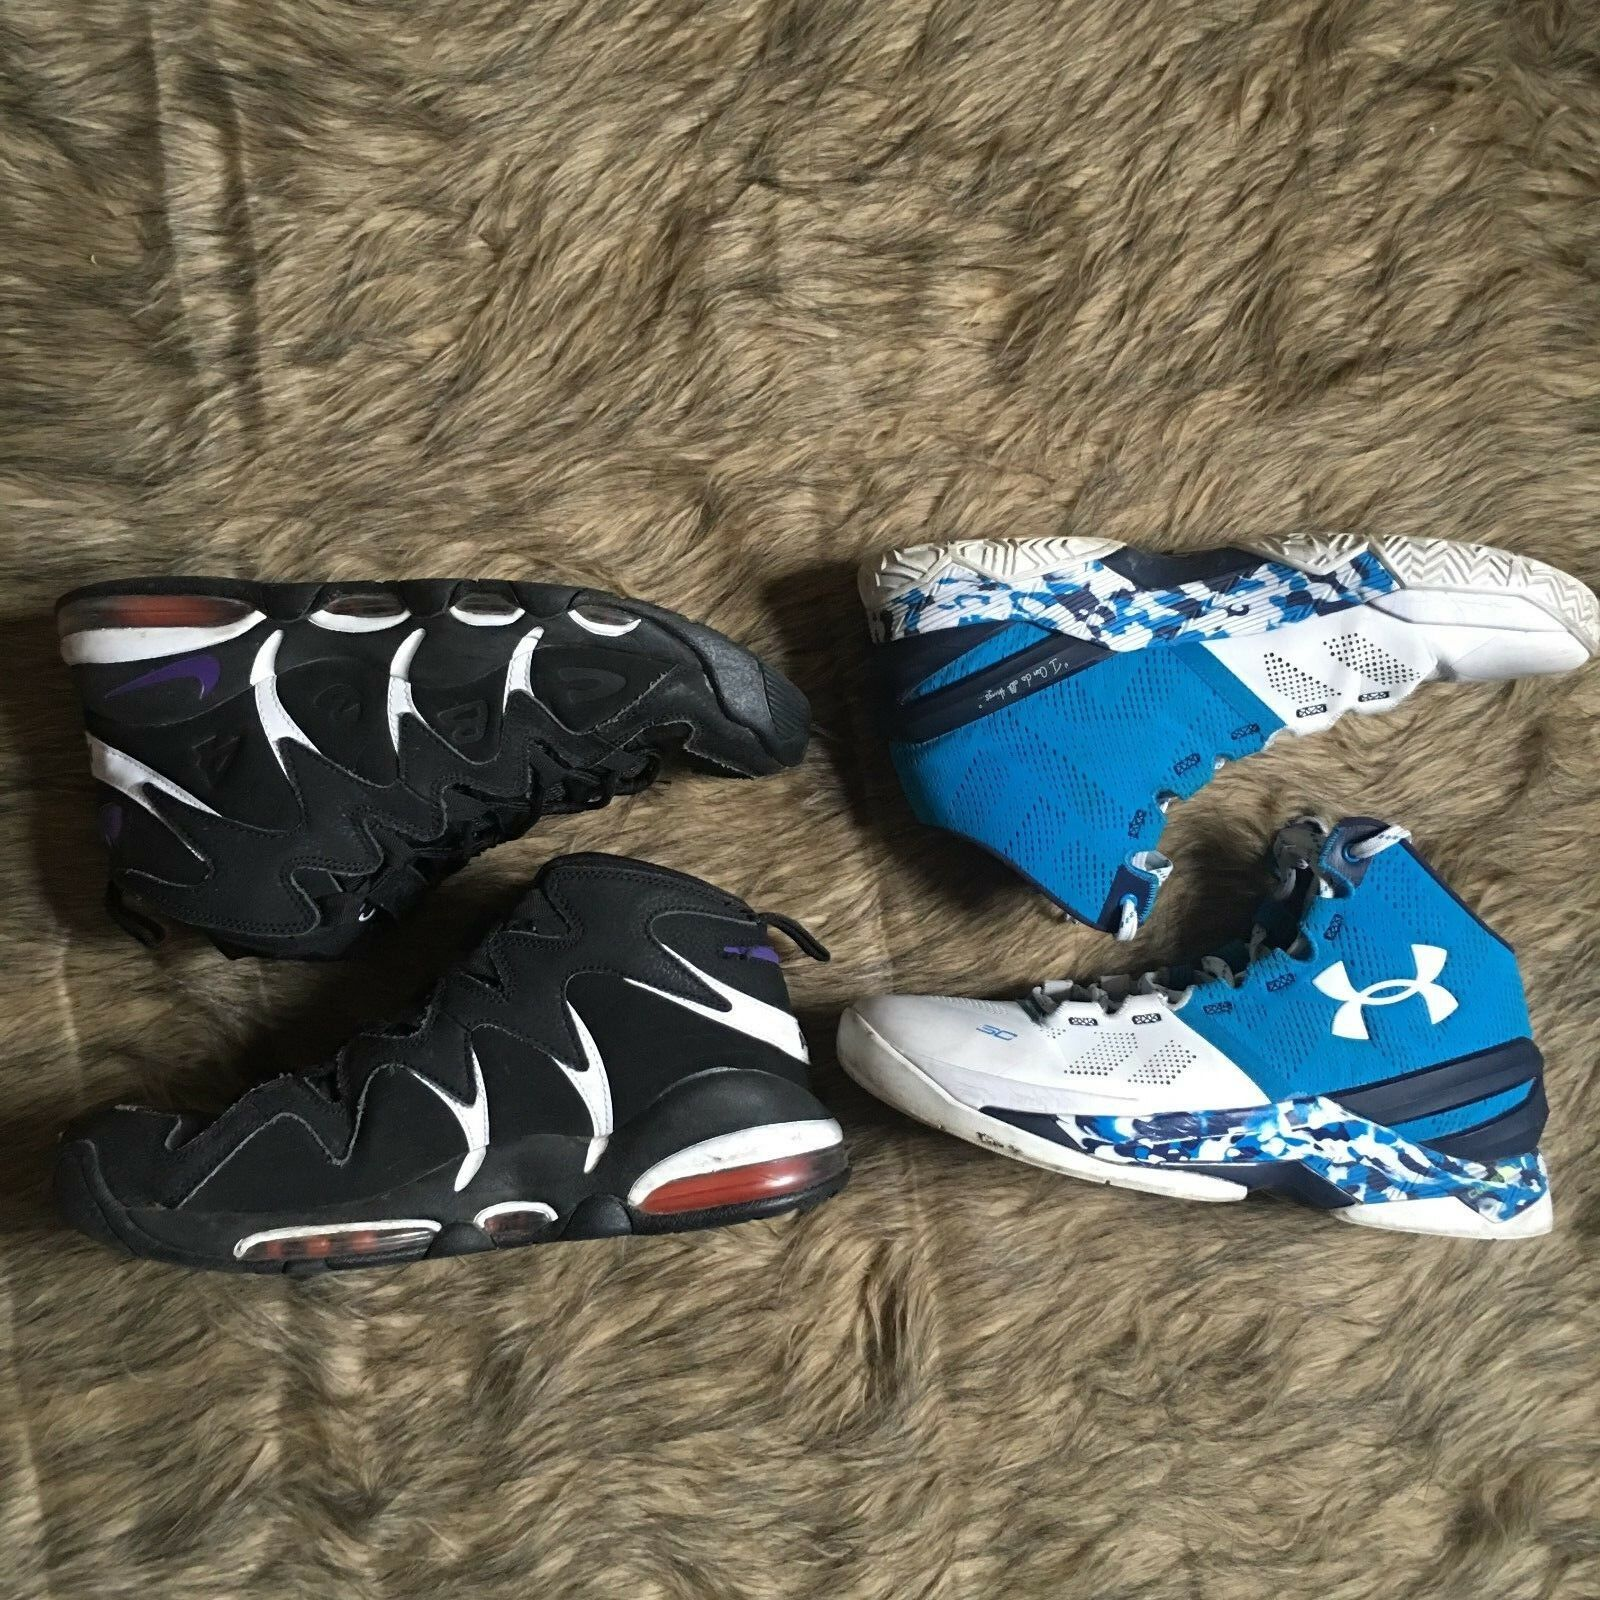 Nike Air Basketball Men's 414243-002 Under Armor Basketball Air Shoes Lot of 2 Size 10 810fd9